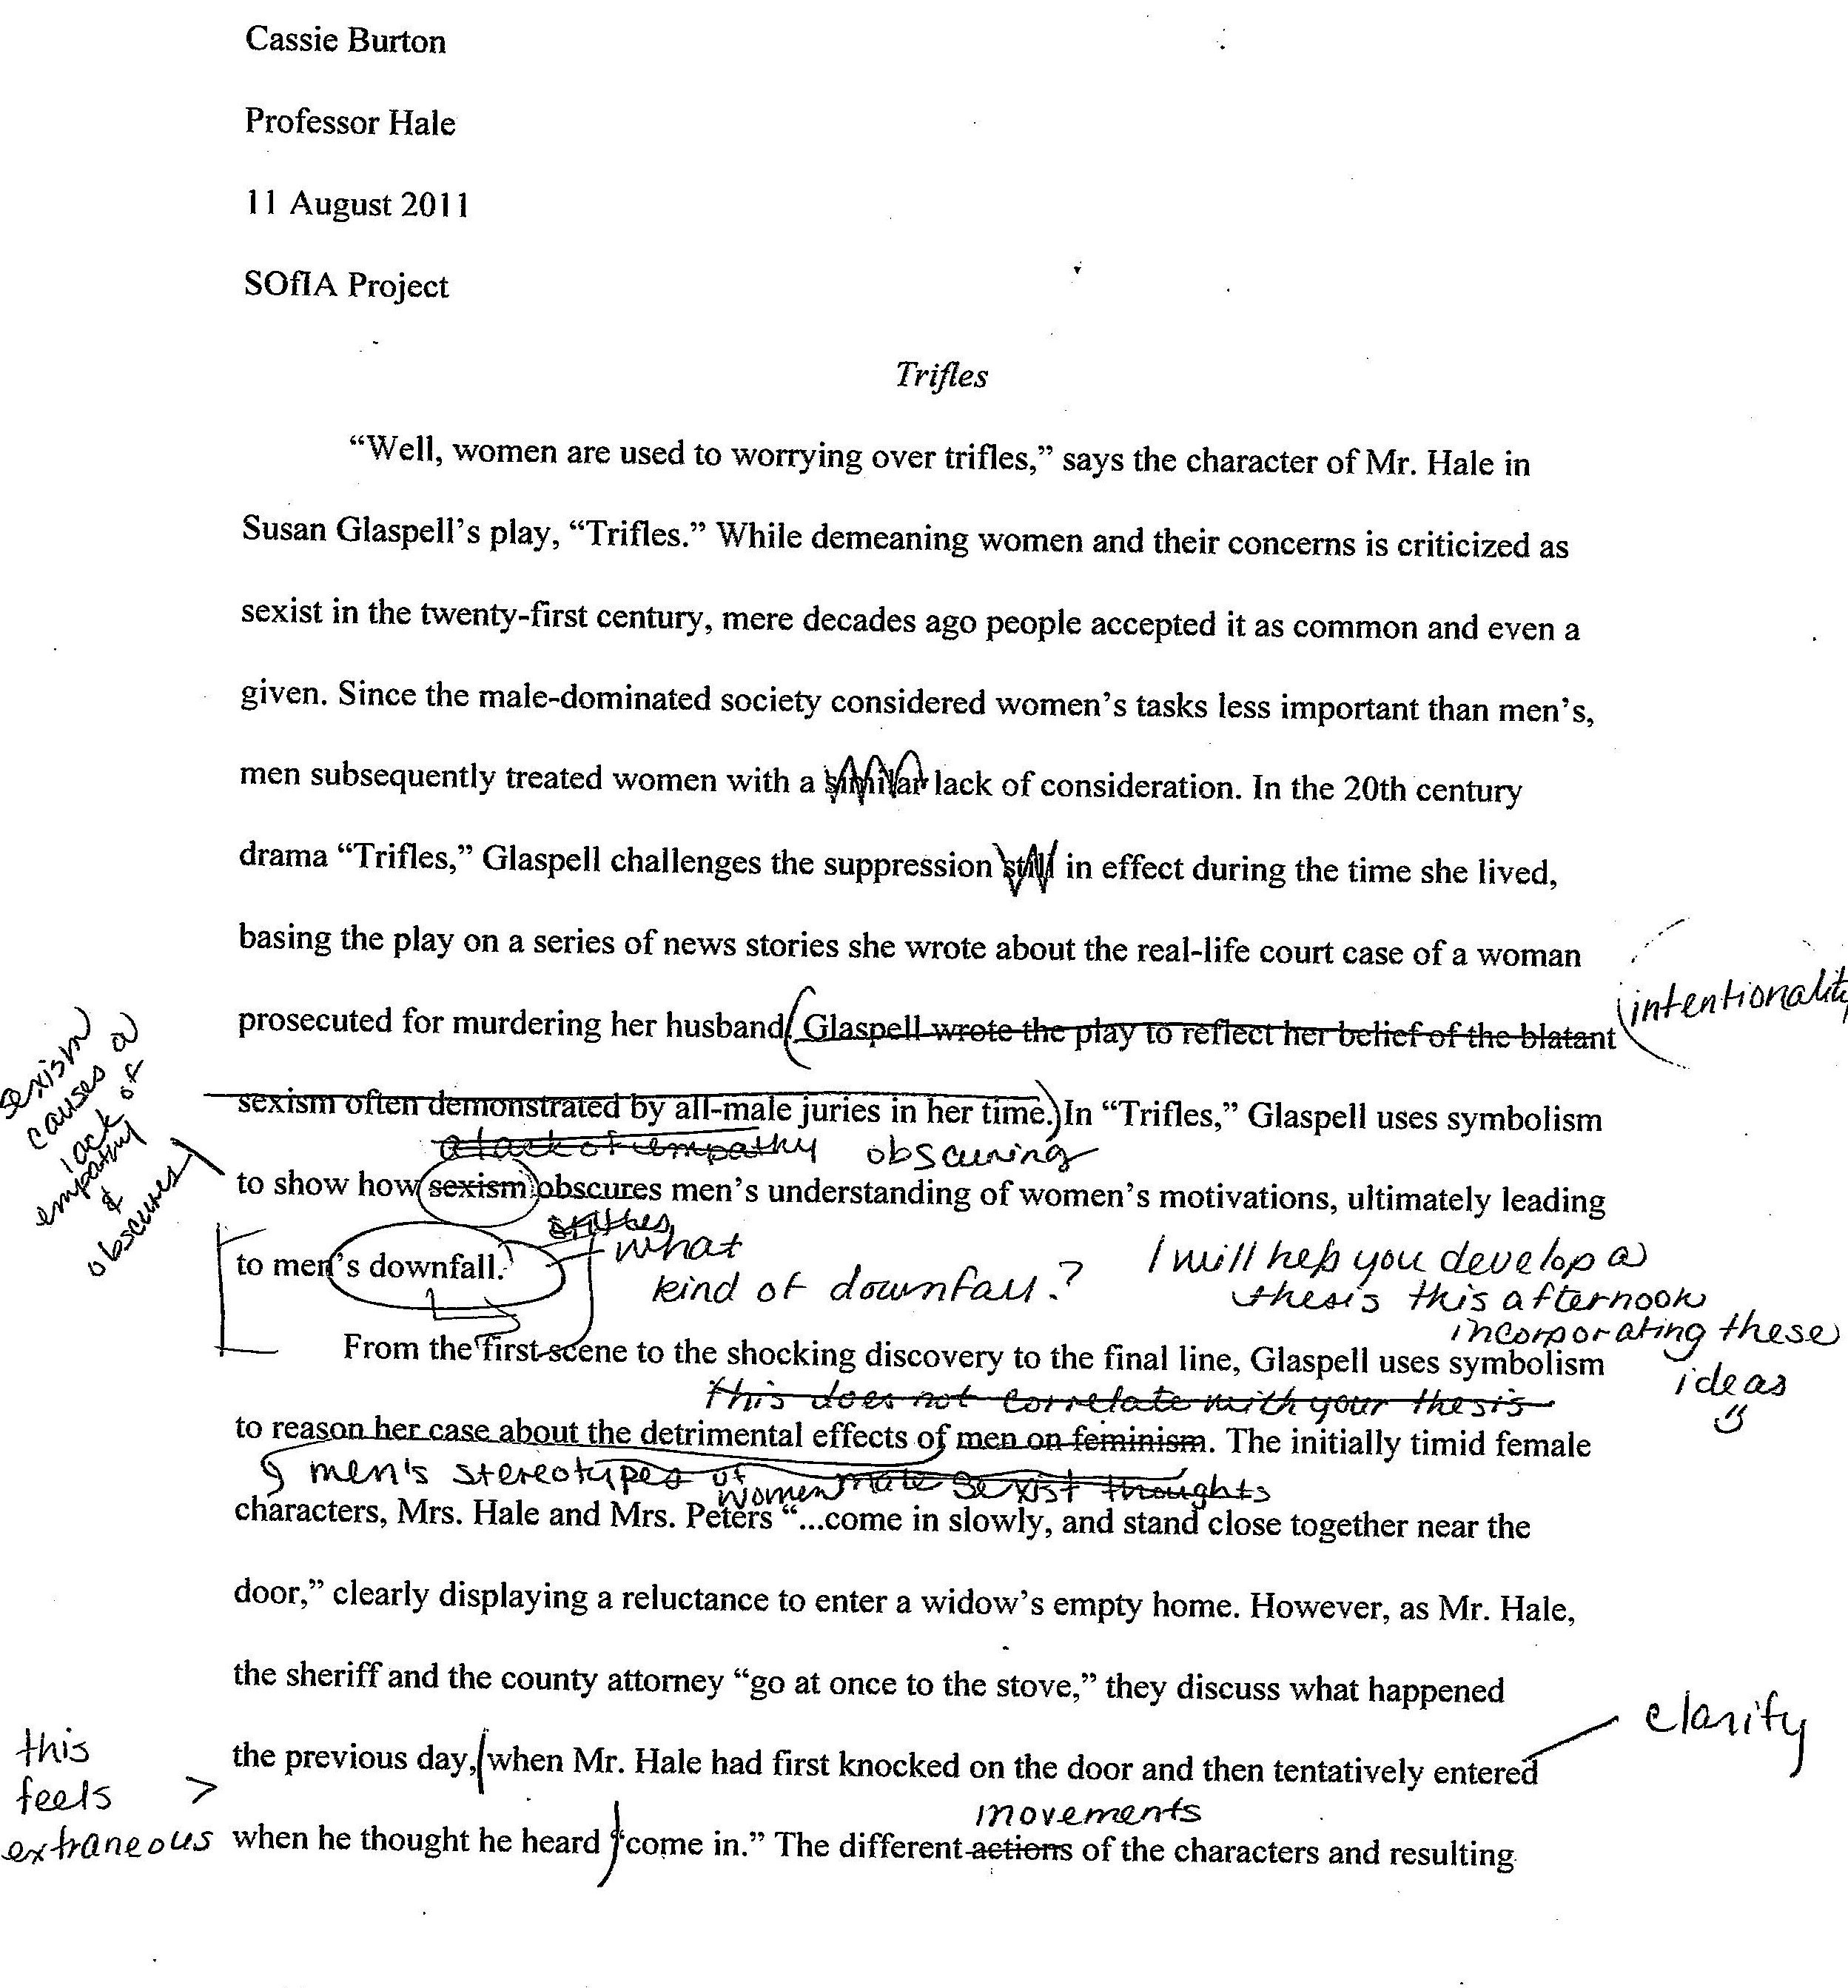 essay on discrimination against women women essay gender  essay on trifles by susan glaspell trifles by susan glaspell trifles by susan glaspell students teaching